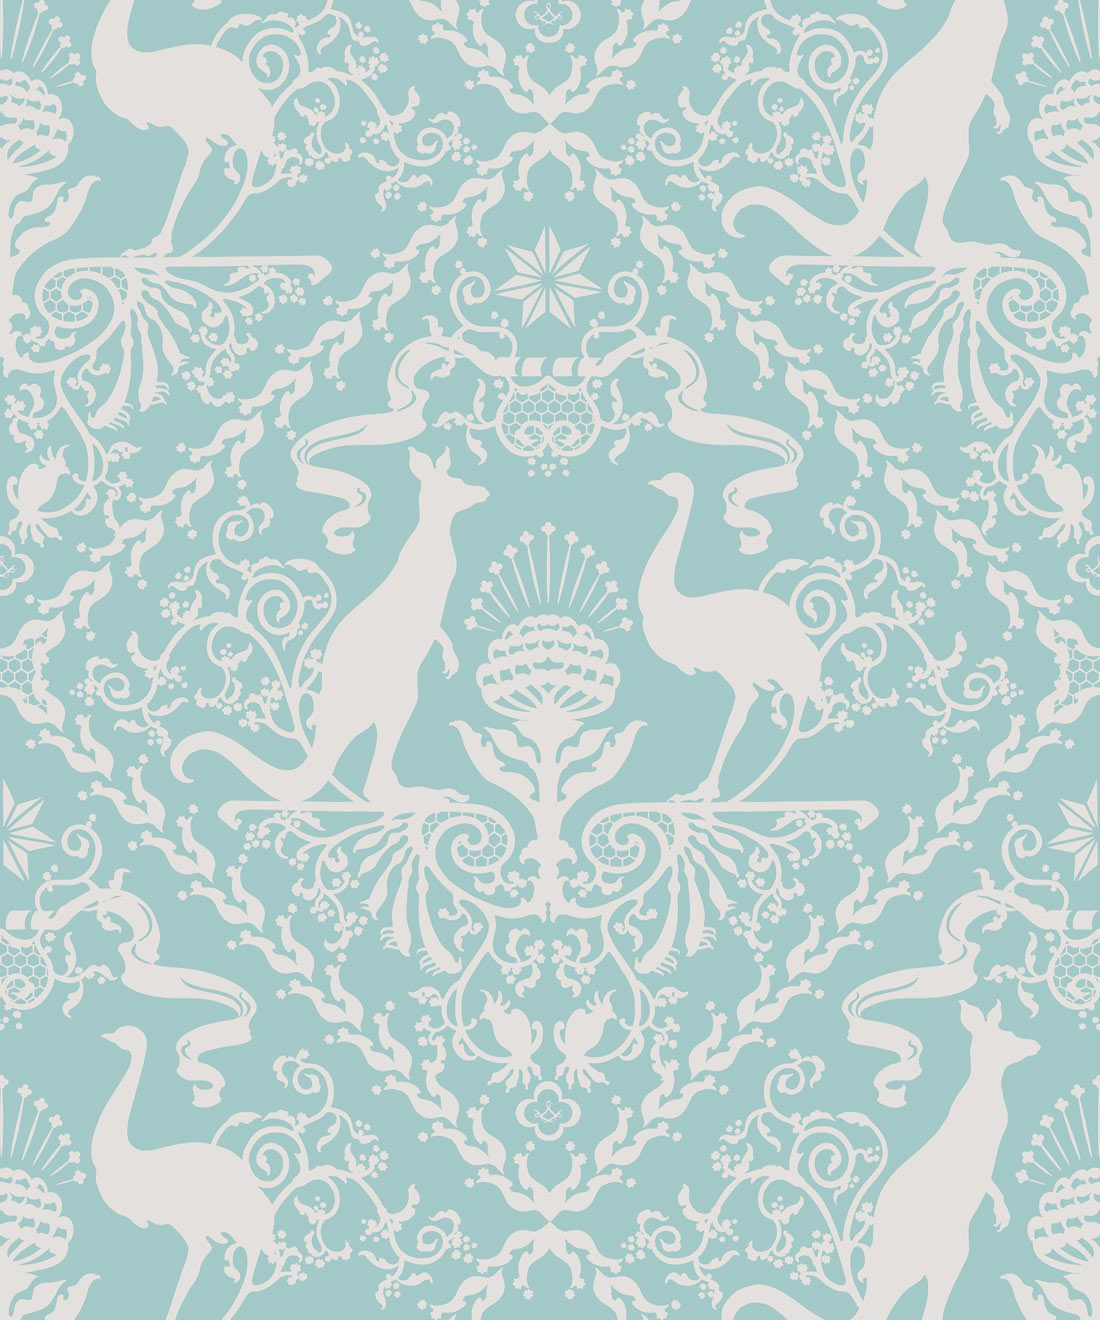 In Australia We Trust Cockatoo• Australian Wallpaper • Australian Coat of Arms • Milton & King Europe • Aqua Wallpaper Swatch